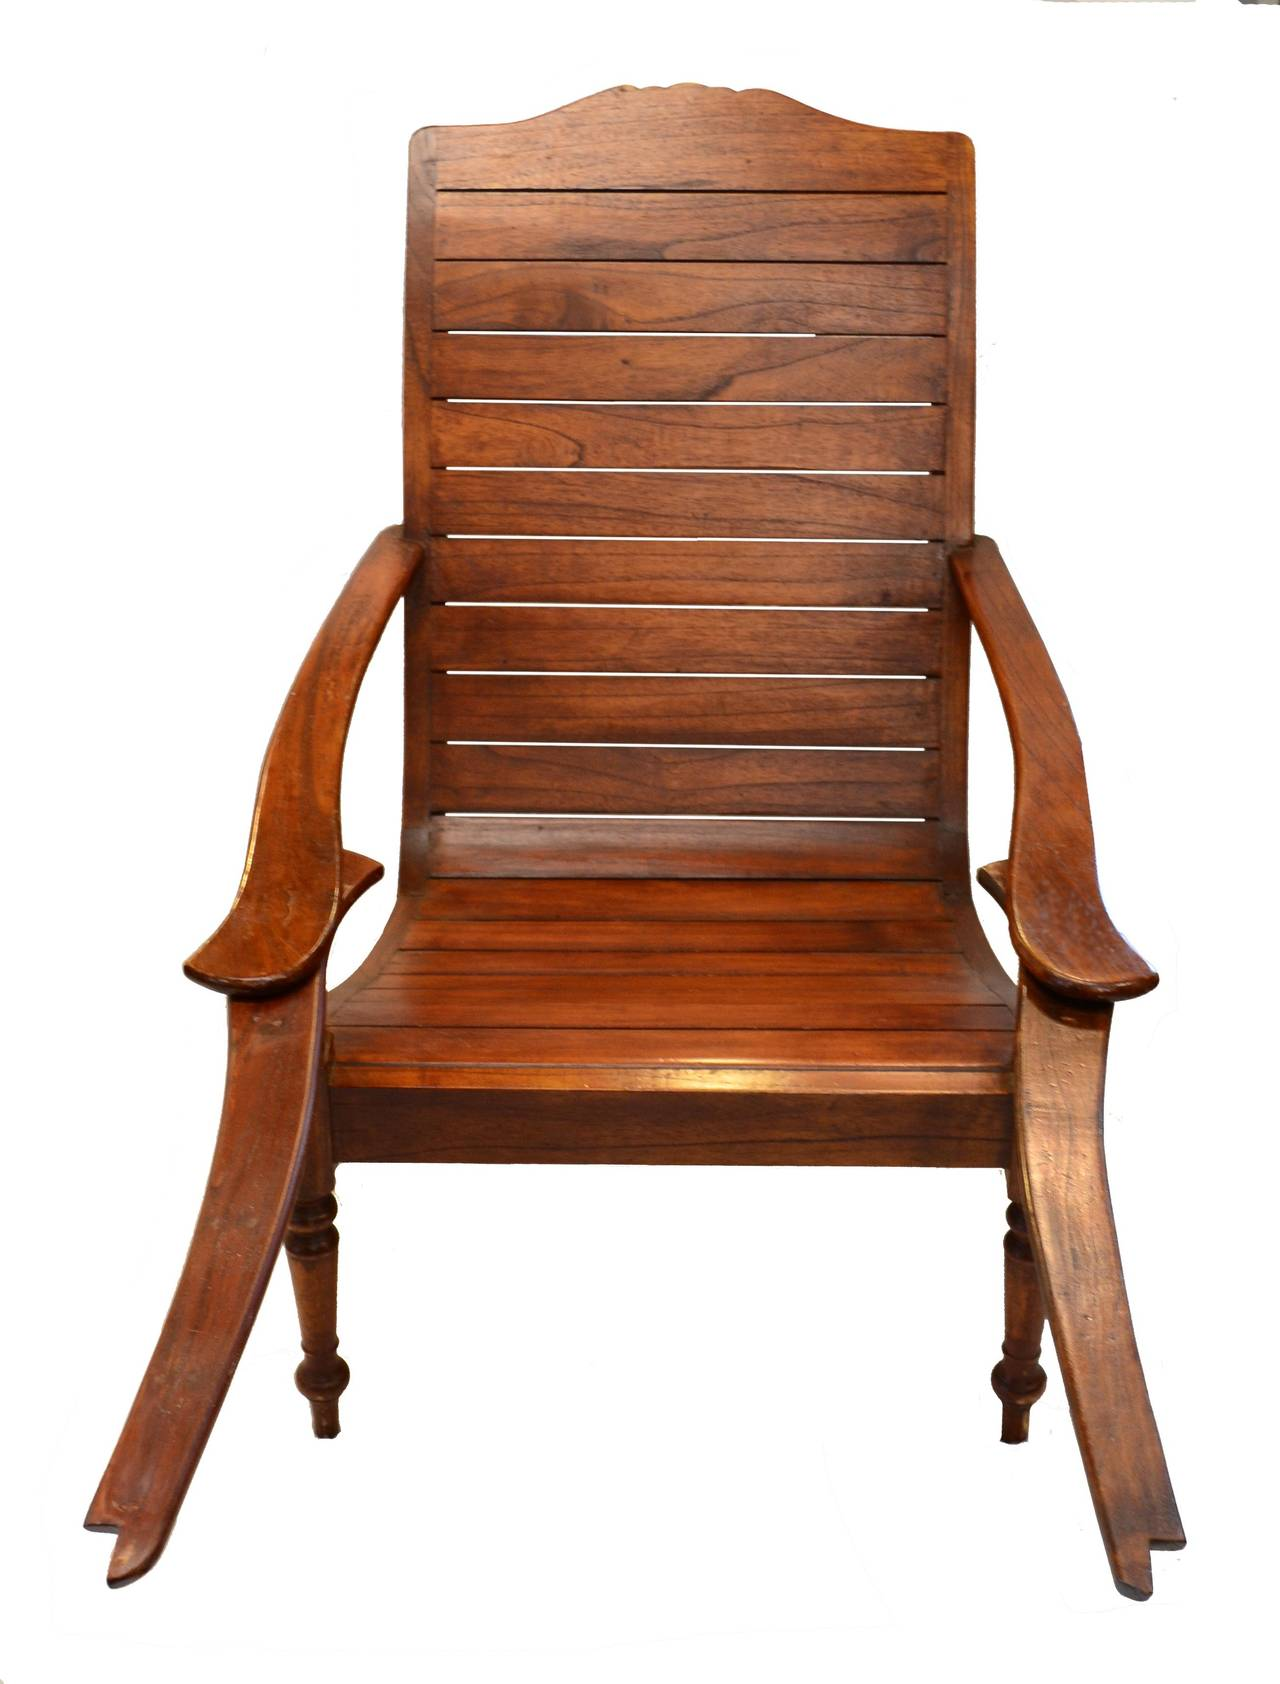 Teak plantation chair - Plantation Chair With Swivel Out Footrests 2